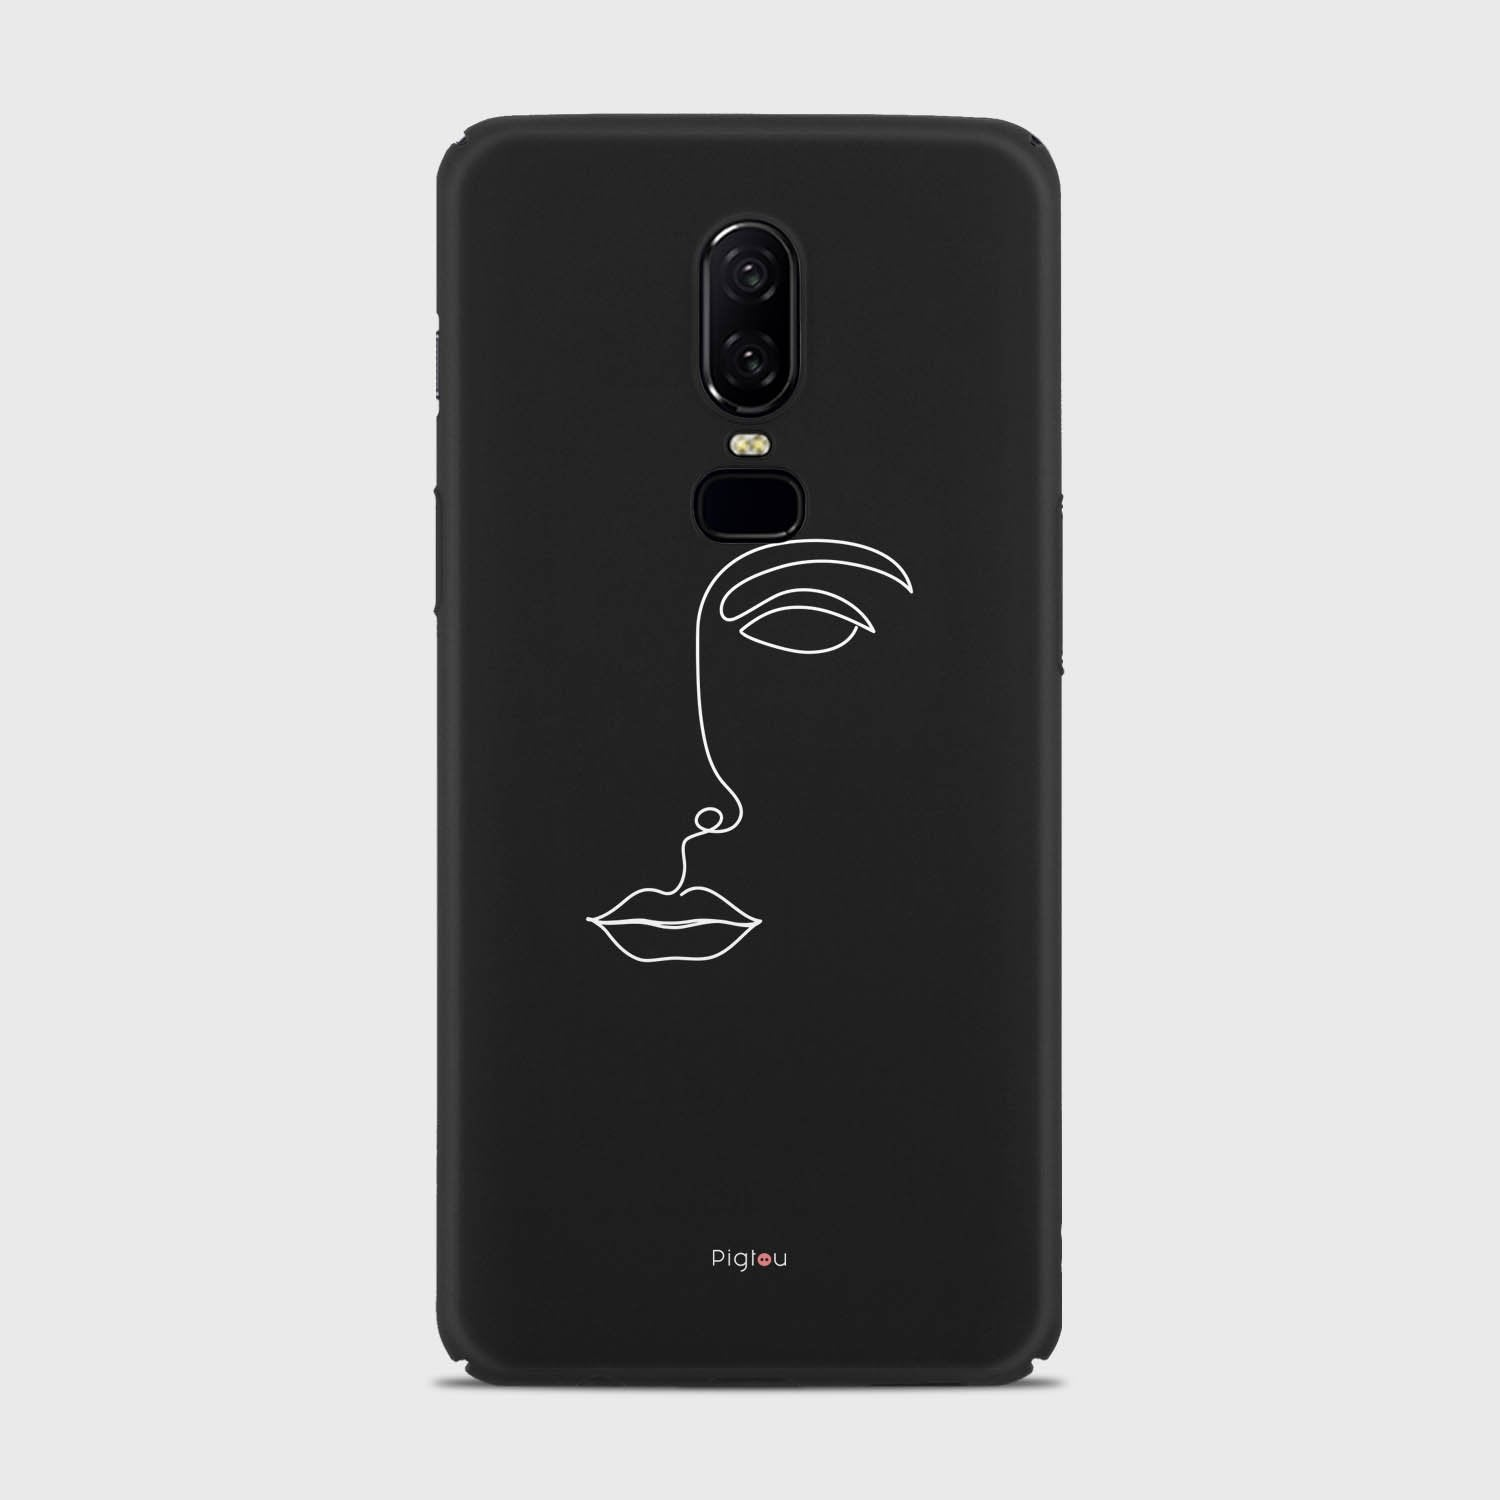 SILHOUETTE FACE Oneplus 7T Pro cases | Pigtou